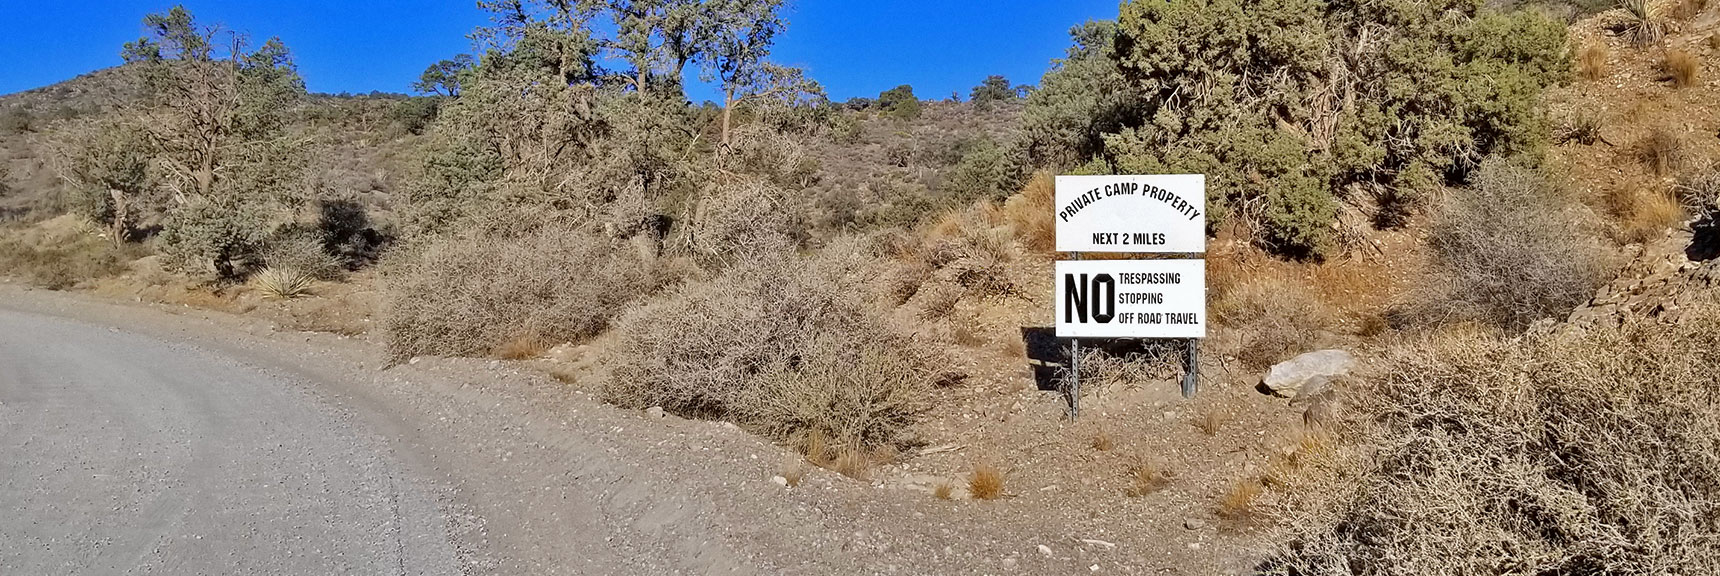 2-mile Private Property Stretch: Bronco Off-Roadeo and Methodist Camp   Potosi Mountain Northwestern Approach, Spring Mountains, Nevada